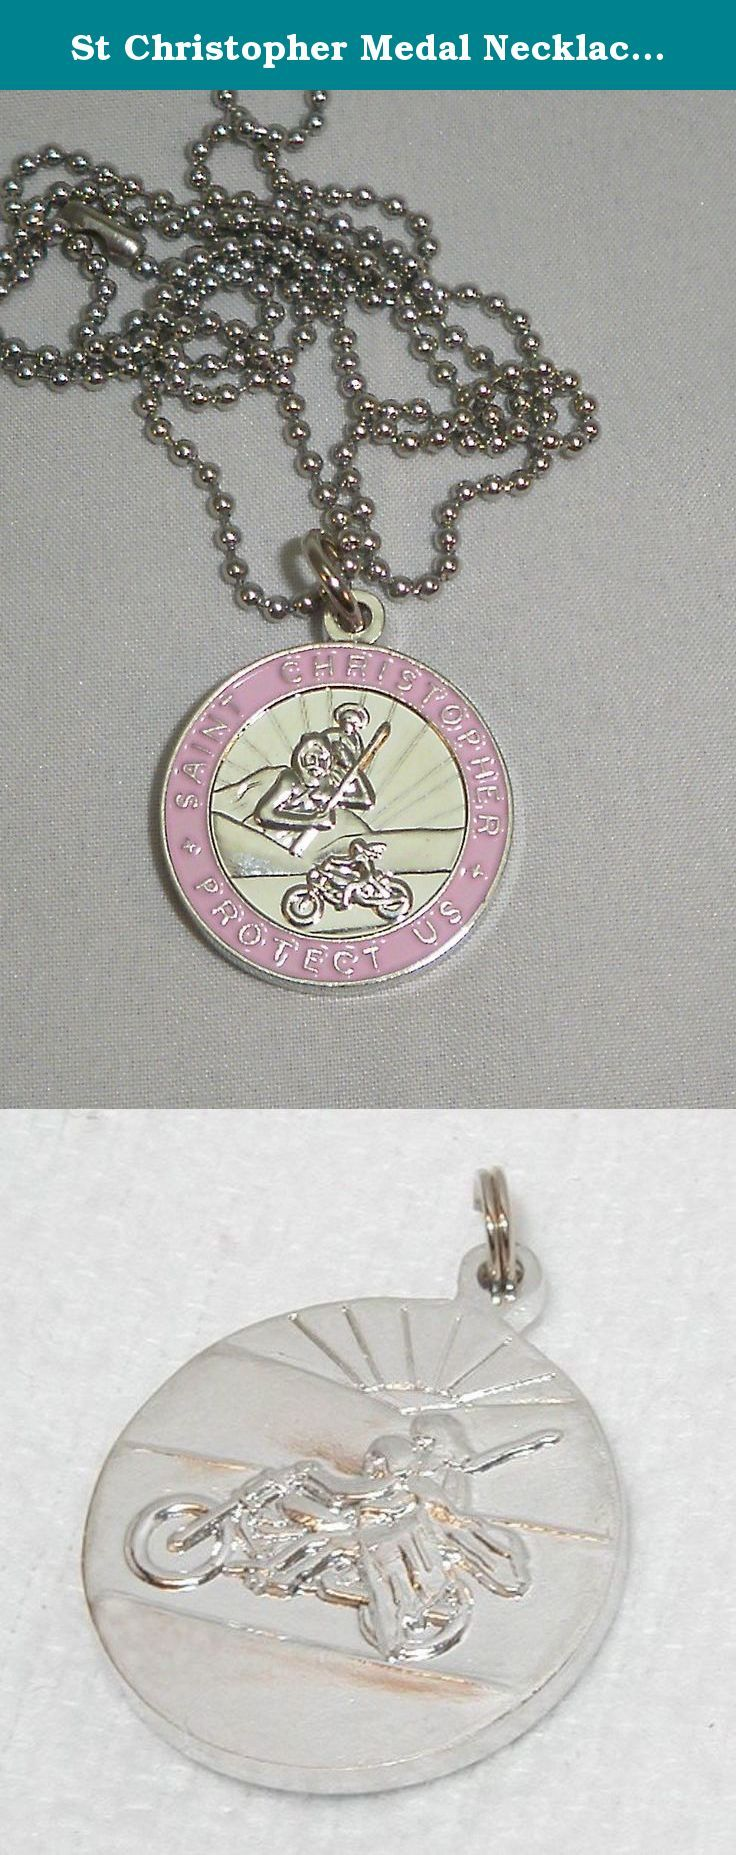 St Christopher Medal Necklace for Motorcycle Riders Pink w/ Stainless Steel Chain. The front of the medal shows St. Christopher (the protector of travel) keeping a watchful eye over the road delivering the rider safely to his destination.On the back of the medal, St. Christopher catches a ride on the bike of his faithful friend.